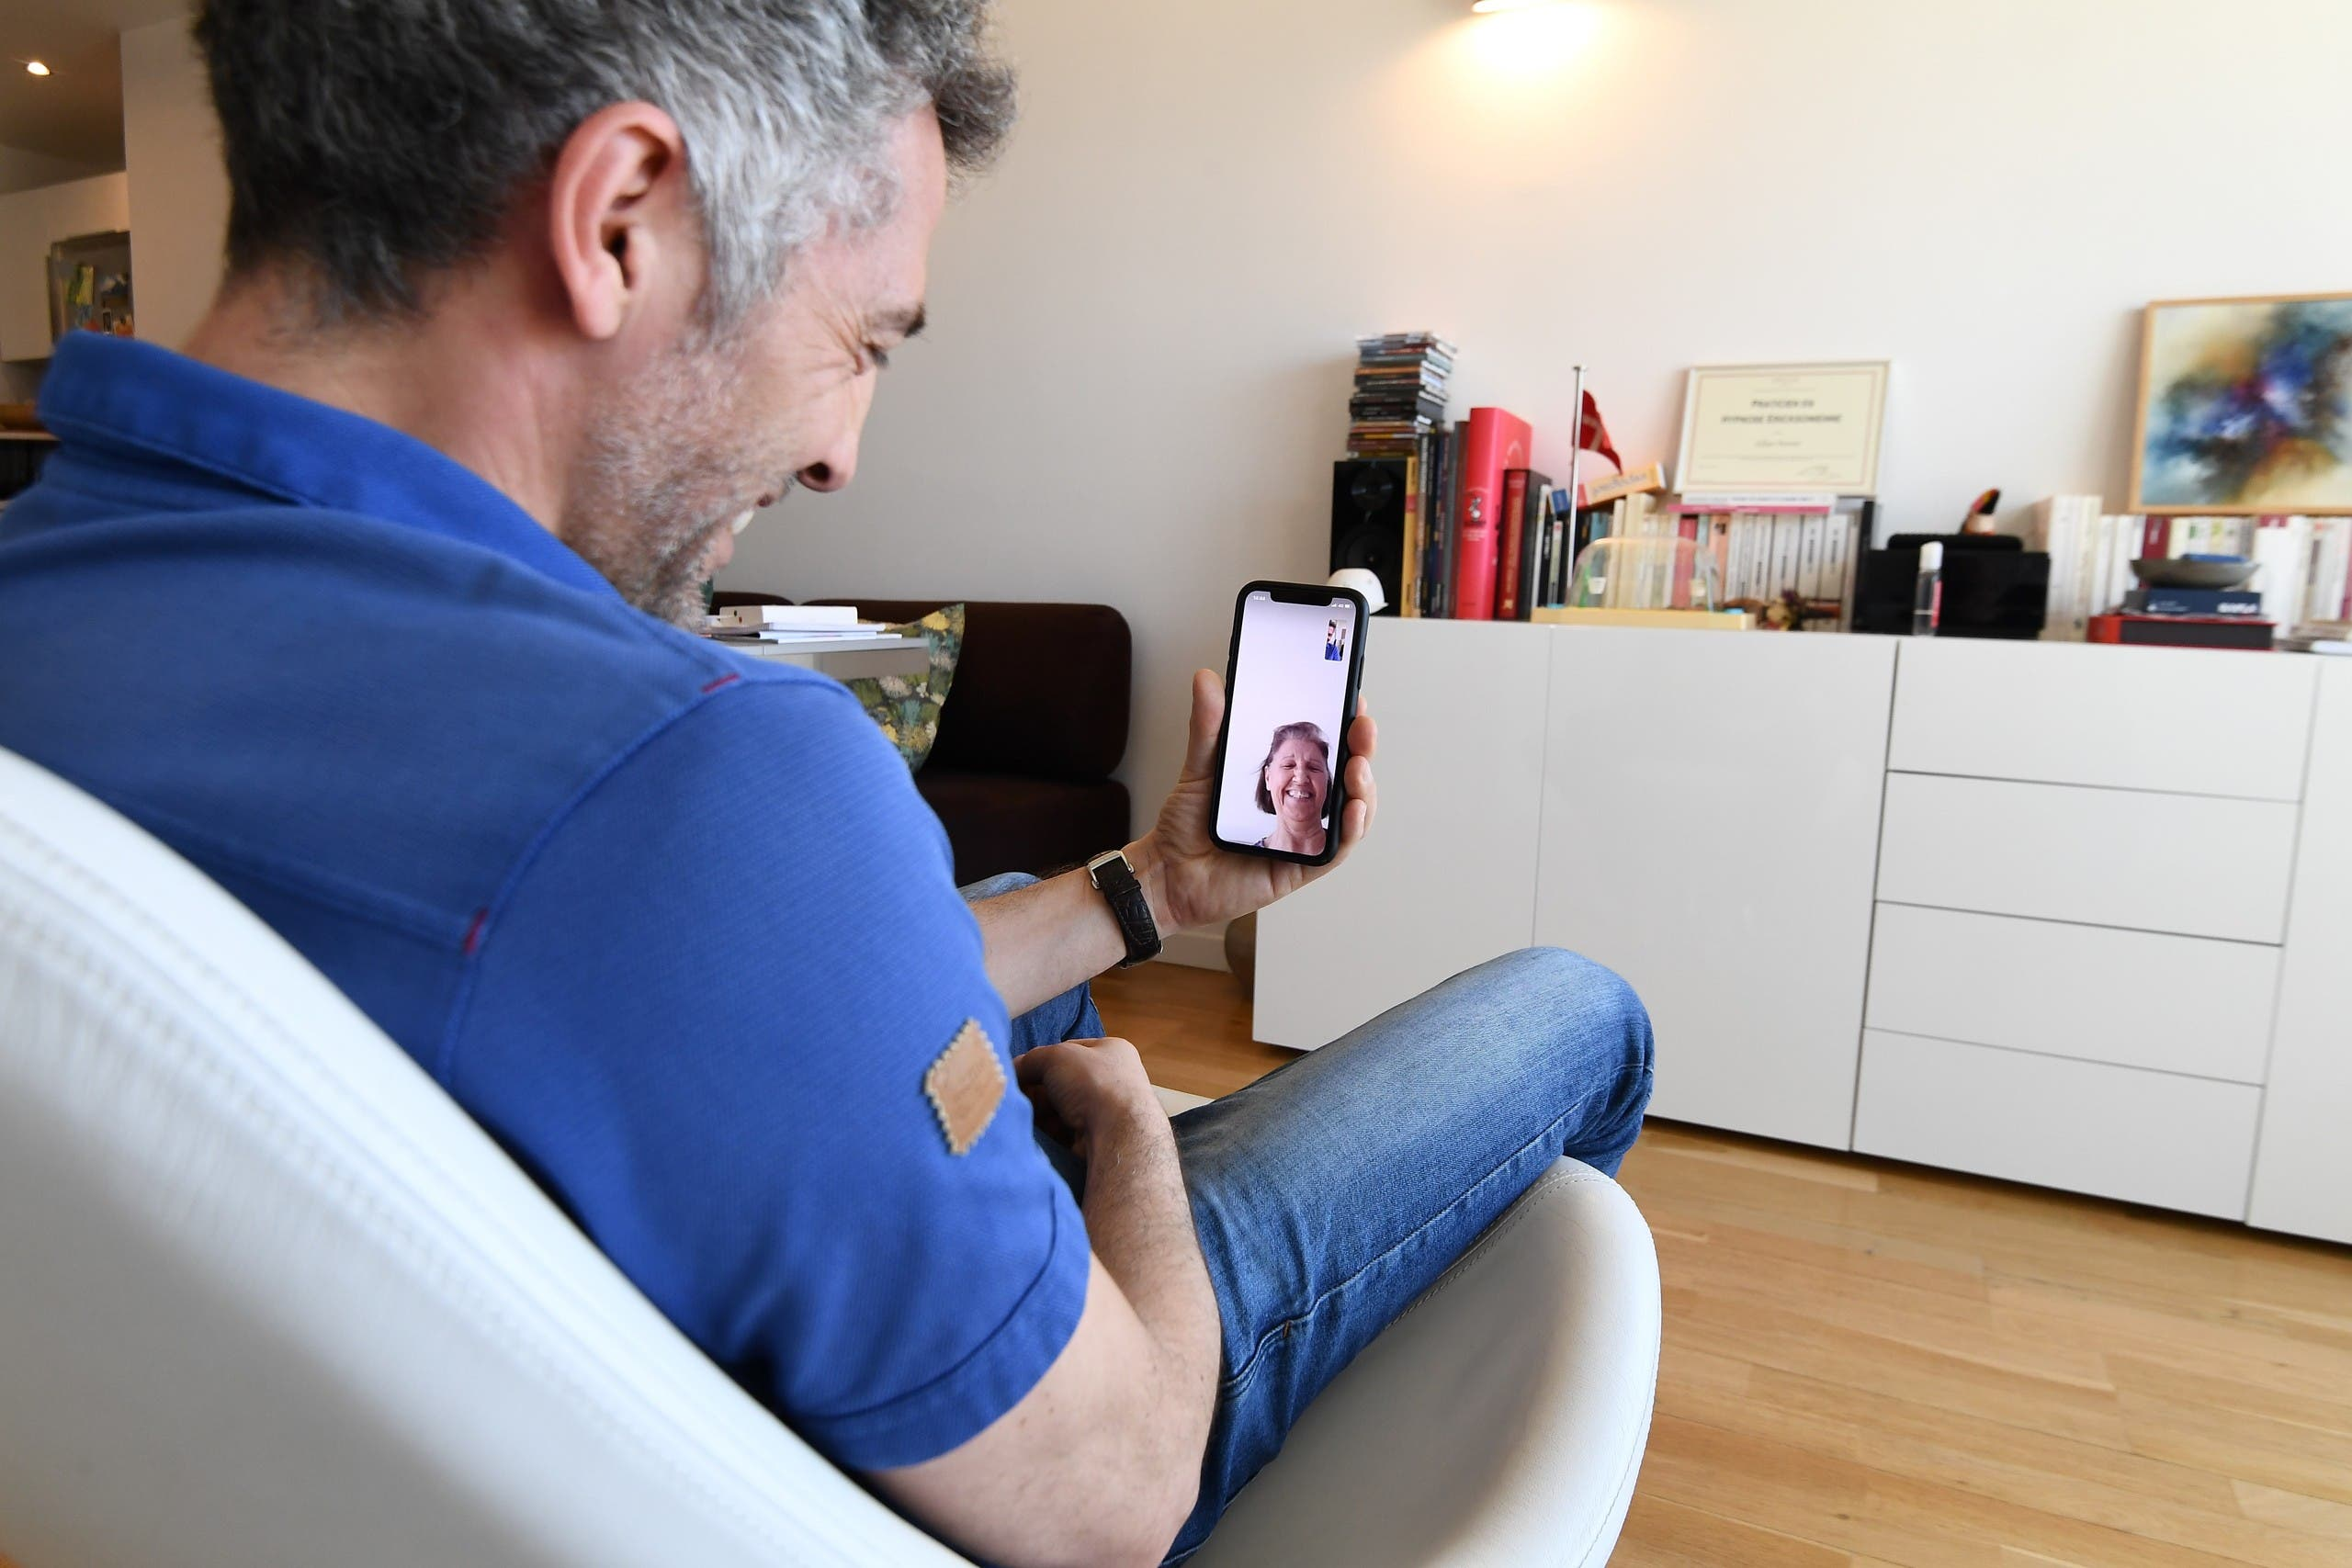 A man speaks with his mother via messaging app Whatsapp at an apartment in Paris on March 25, 2020. (AFP)